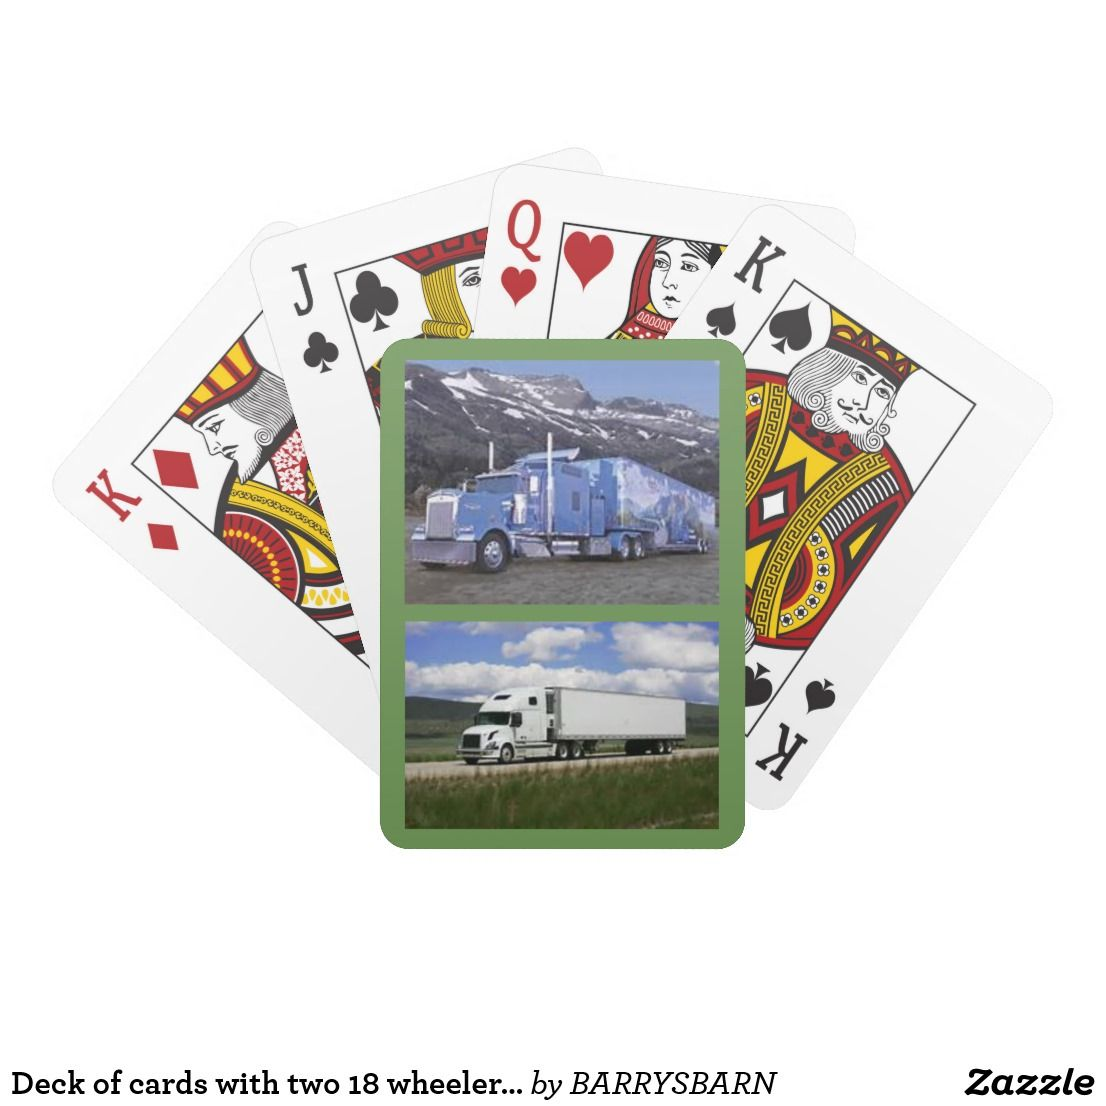 Deck of cards with two 18 wheeler trucks